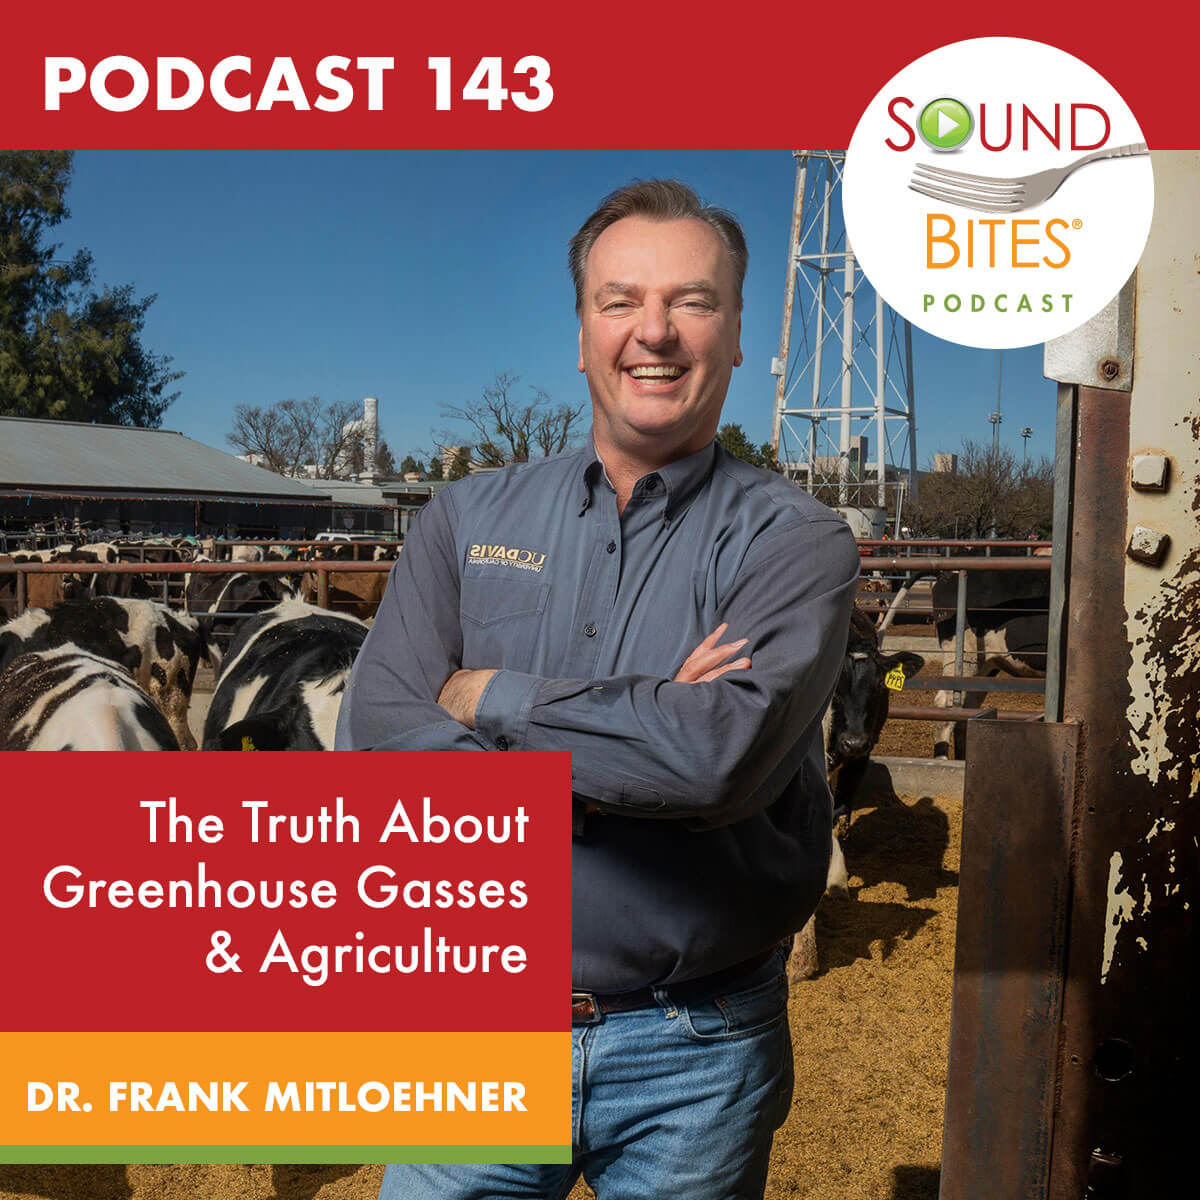 Sound Bites Podcast: Episode 143 The Truth About Greenhouse Gases & Agriculture – Dr. Frank Mitloehner